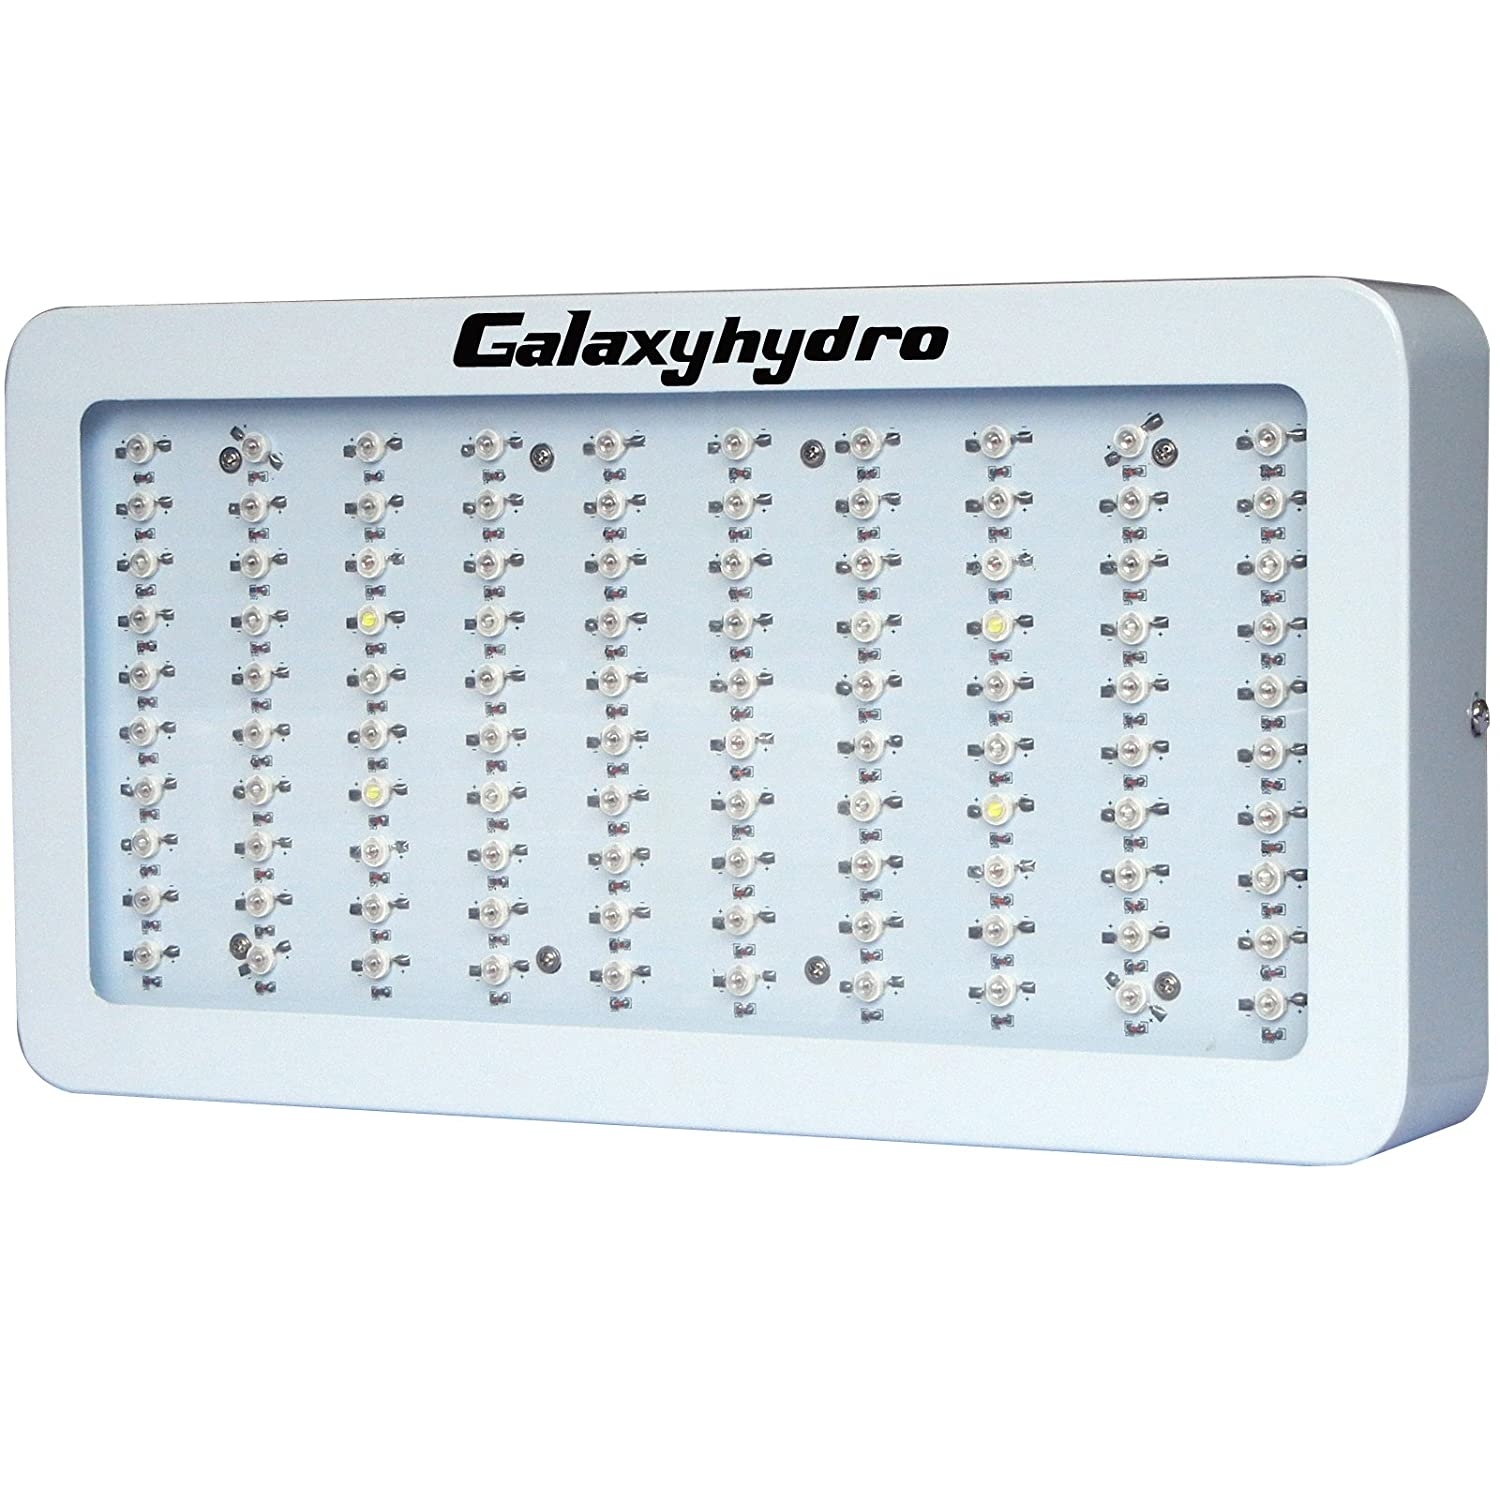 Galaxy hydro Led Grow Lights Full Spectrum 300w